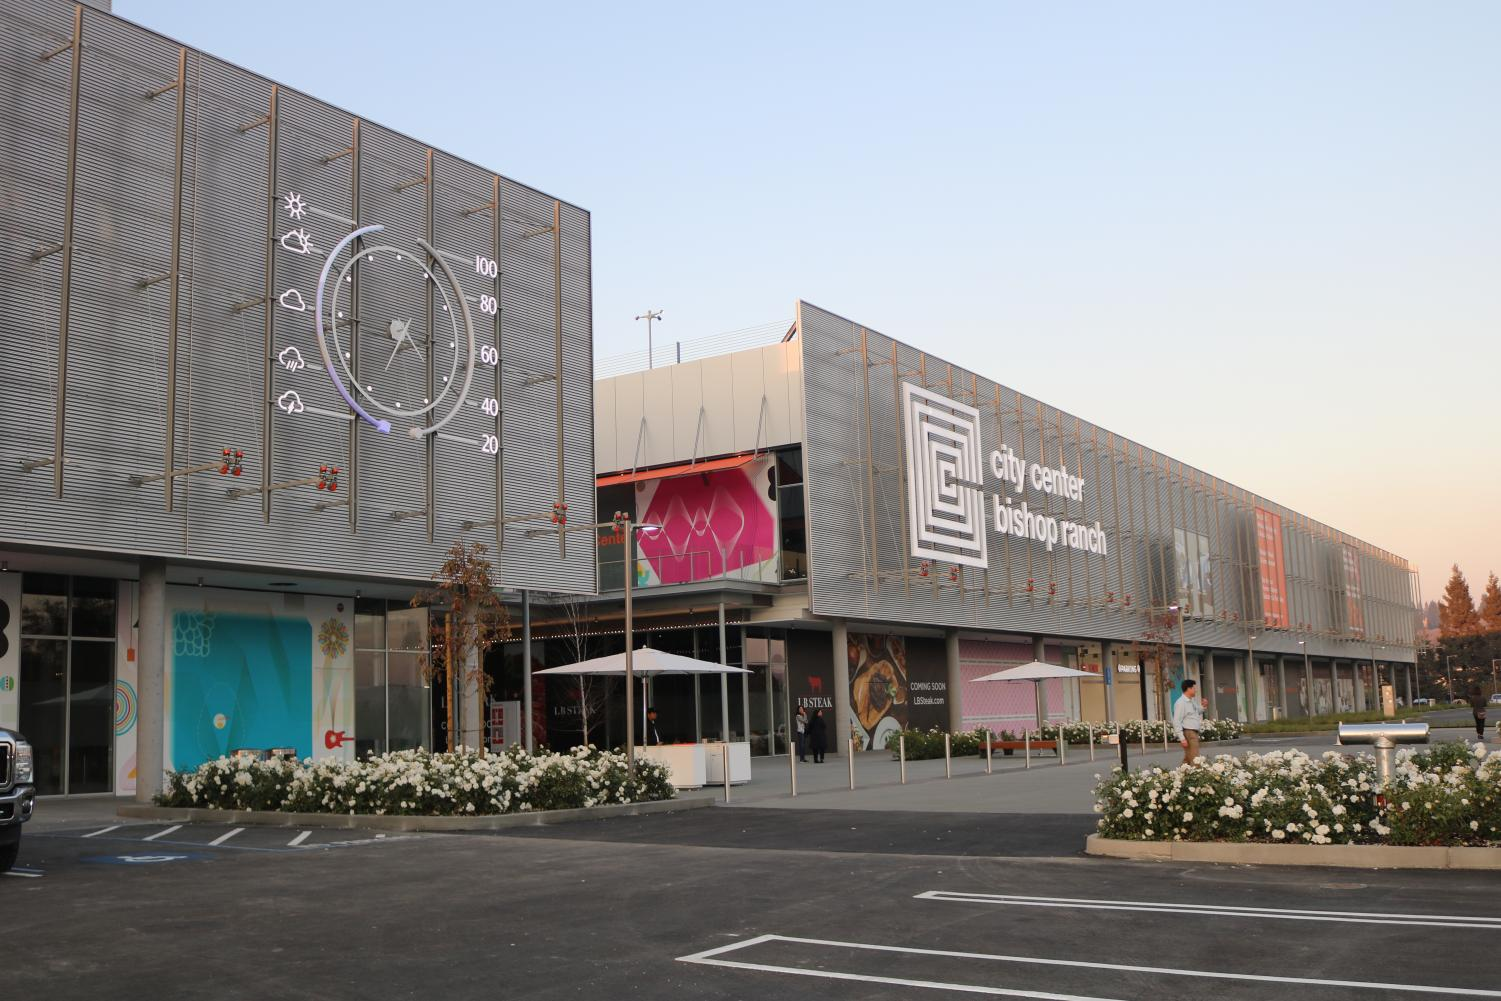 The City Center Bishop Ranch, which has been under construction since May of 2017, opened on Nov. 8. The 300,000 square-foot shopping center on Bollinger Canyon Road features 70 different shops and restaurants.